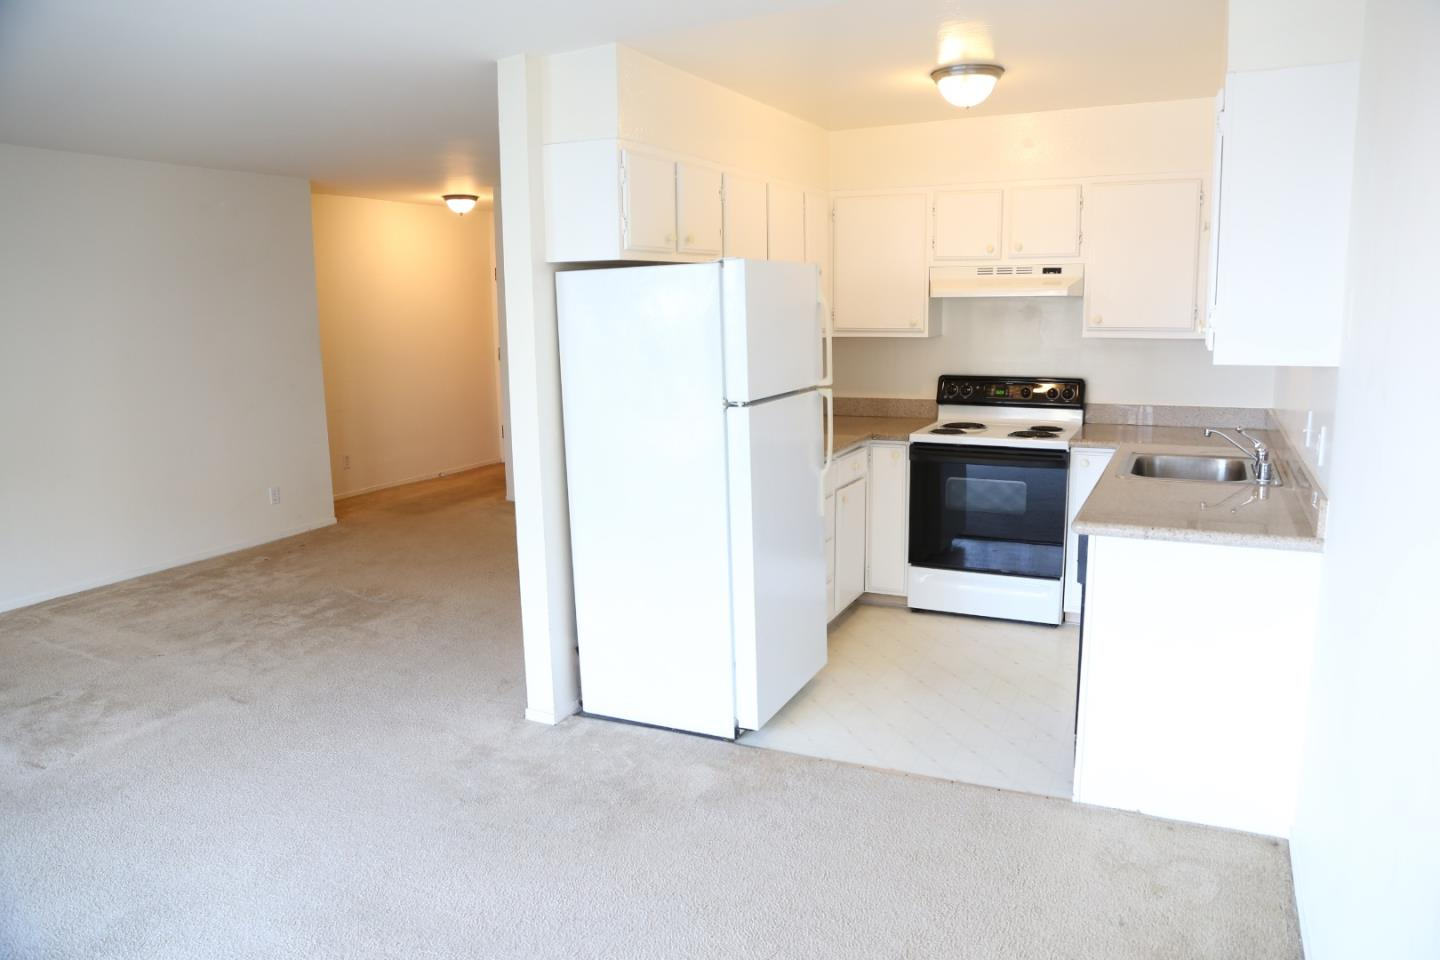 Awesome Bay Views within walking distance to downtown, Chinatown, Embarcadero, etc...this RARE unit just came available and won't last long.  Unit comes with one designated parking spot and onsite laundry room.   Excellent location and neighborhood.  Don't miss seeing this unit.....two bedroom also coming up soon!